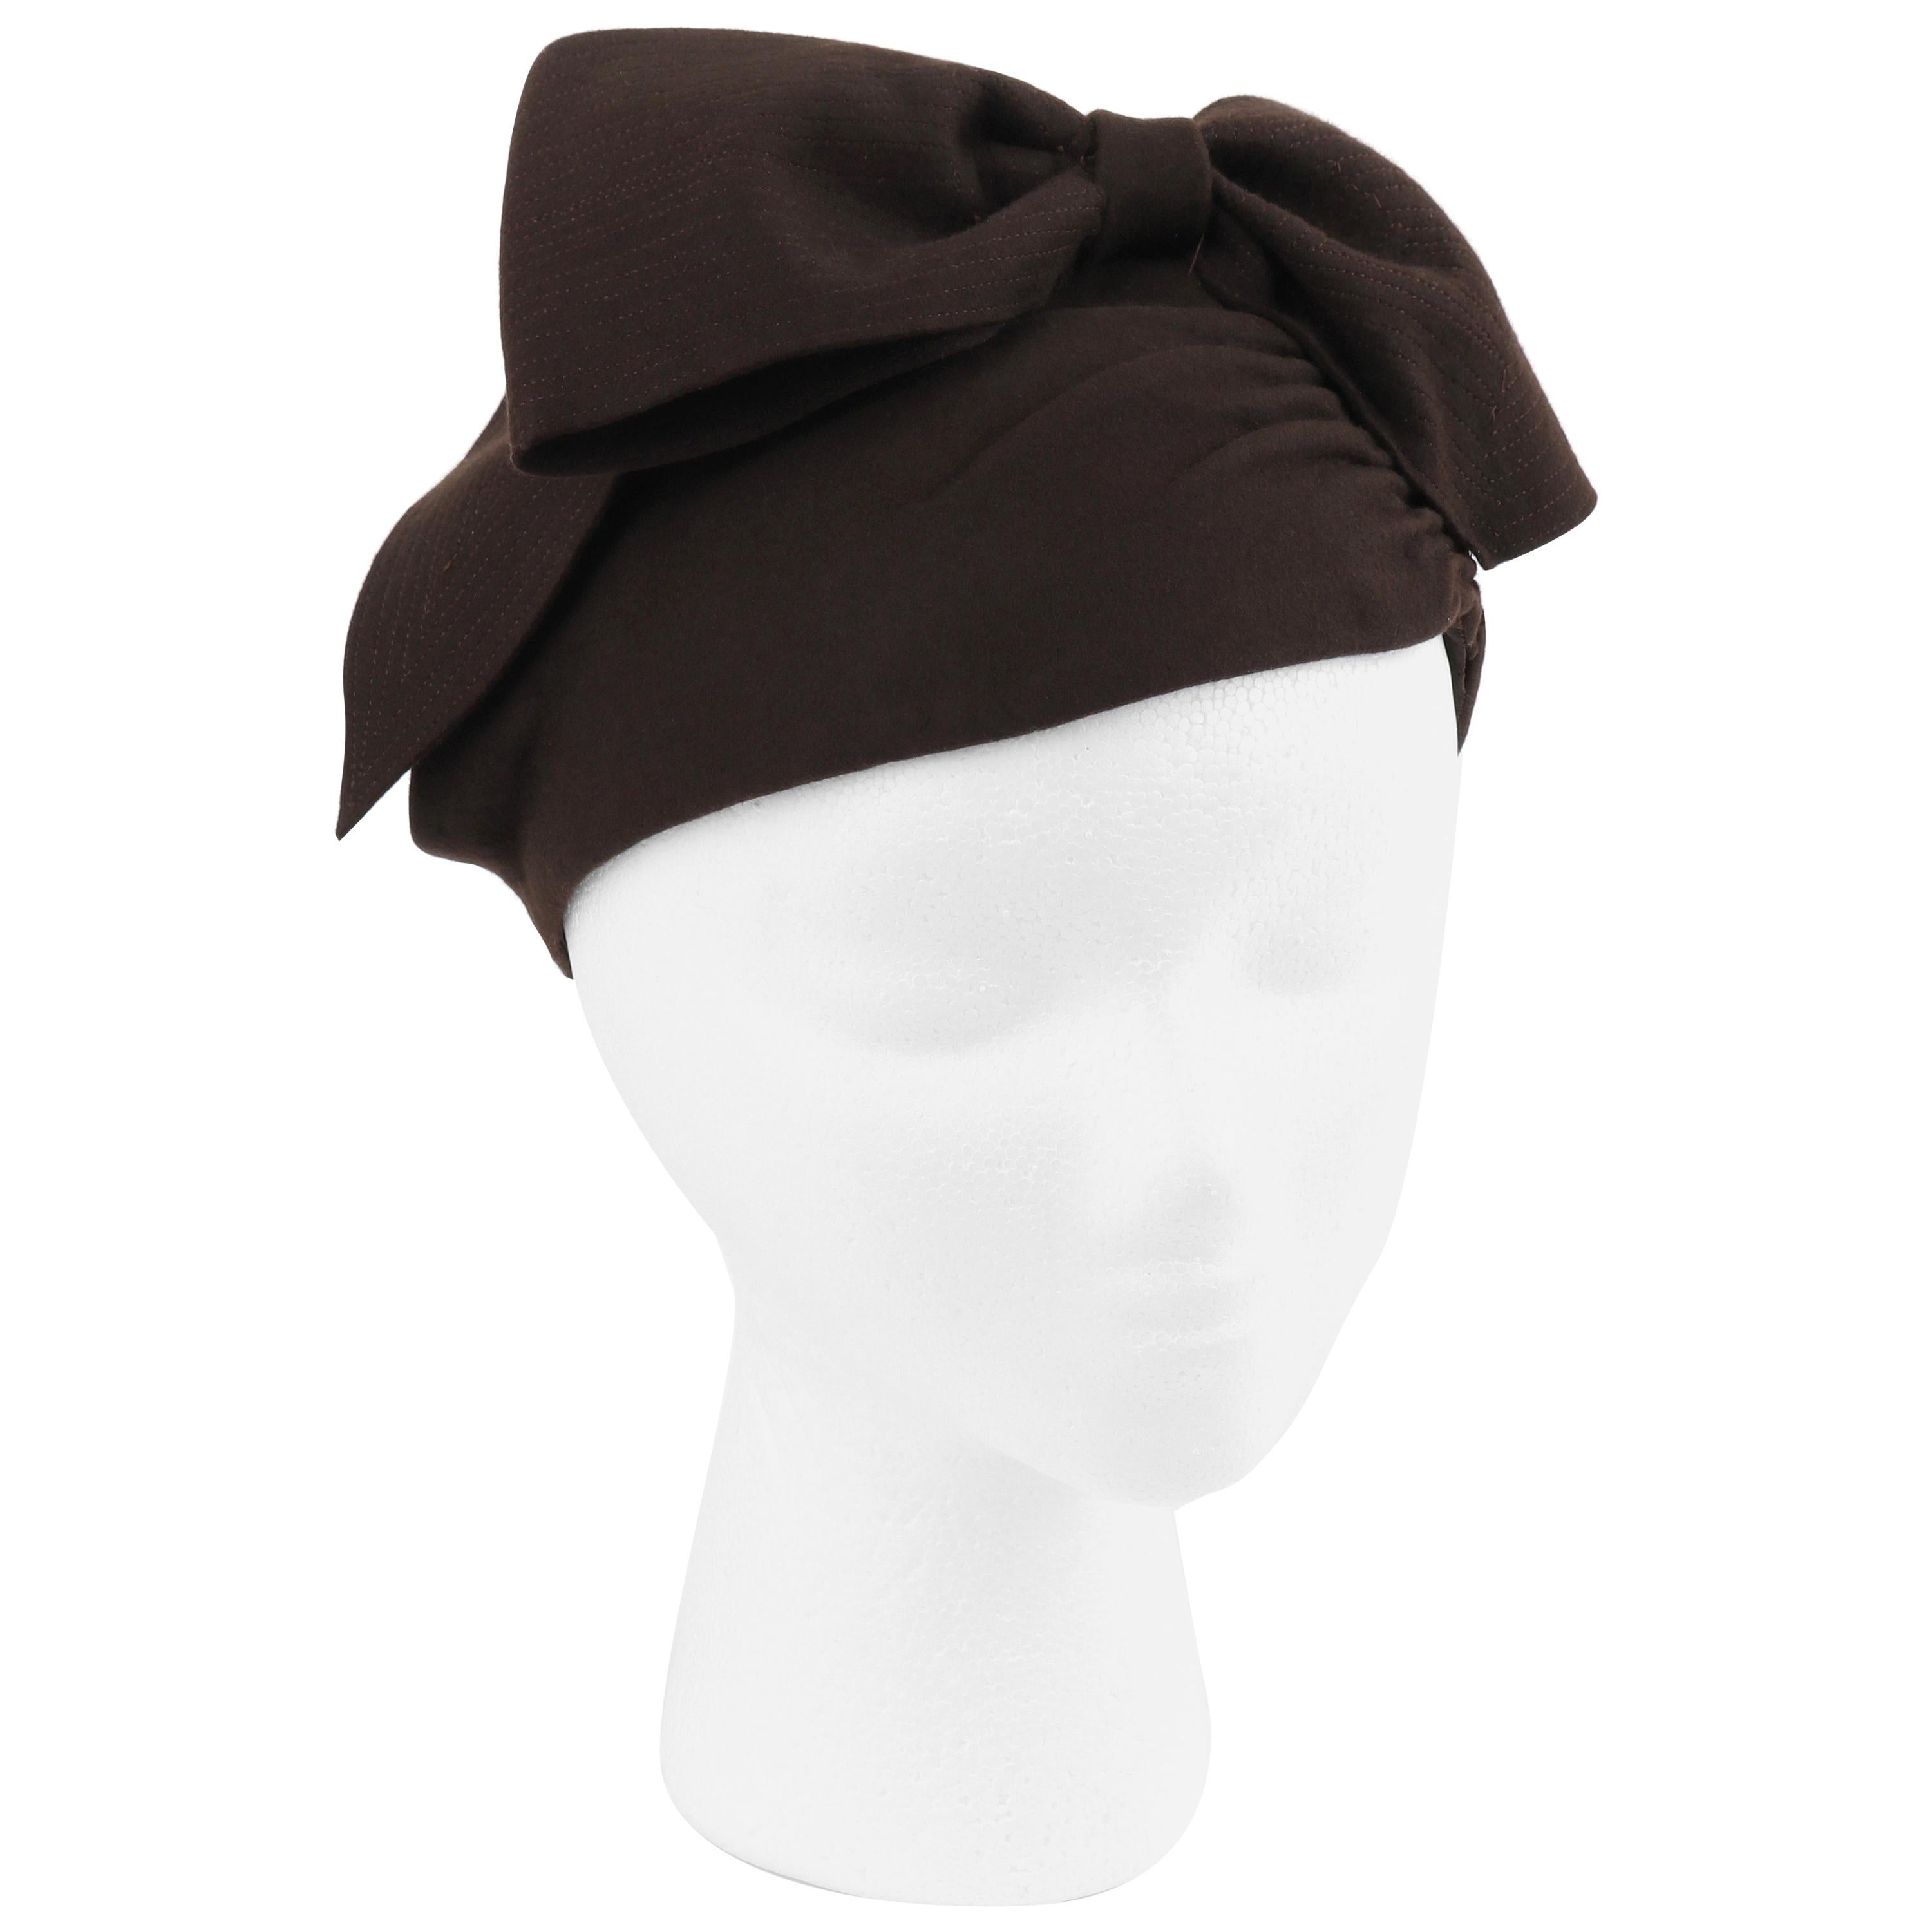 FLORENCE MILLINERY COUTURE c.1940s Chocolate Brown Felt Front Bow Turban Hat